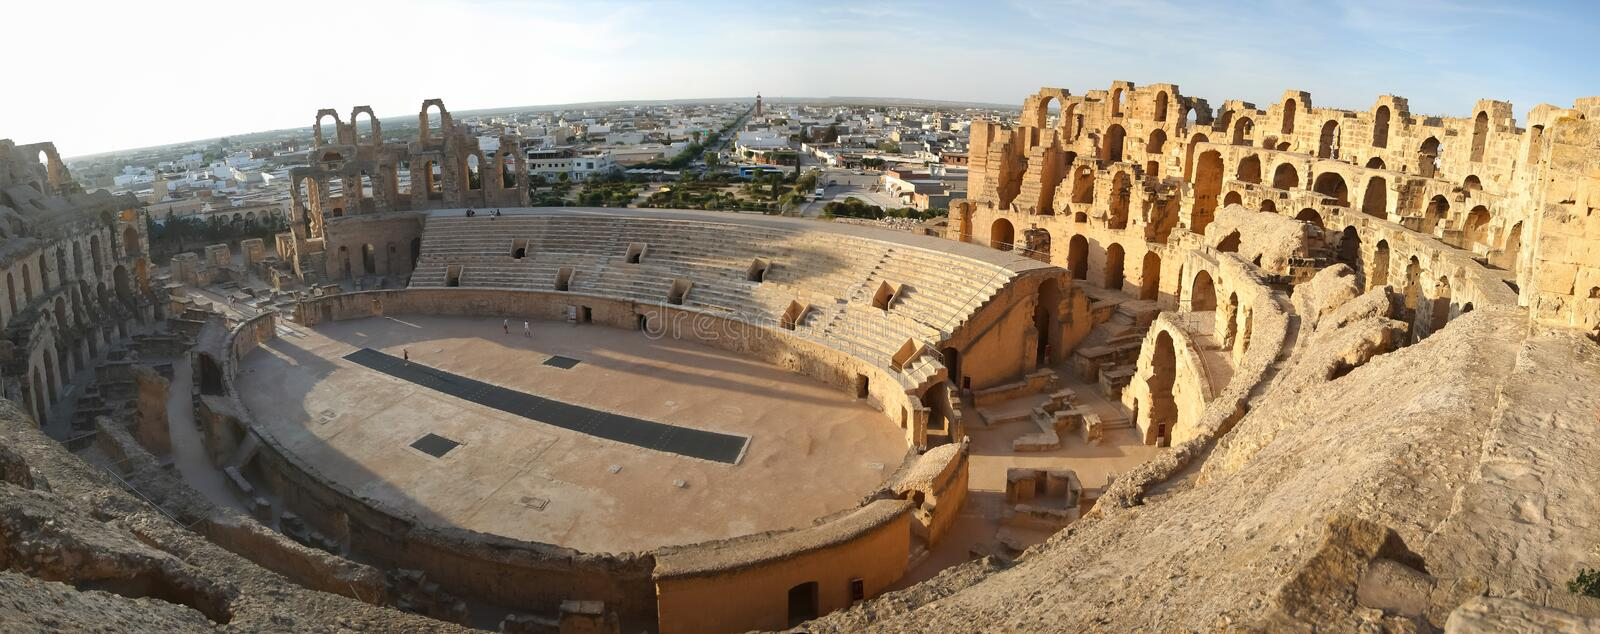 Panorama do Amphitheatre do EL Djem fotos de stock royalty free